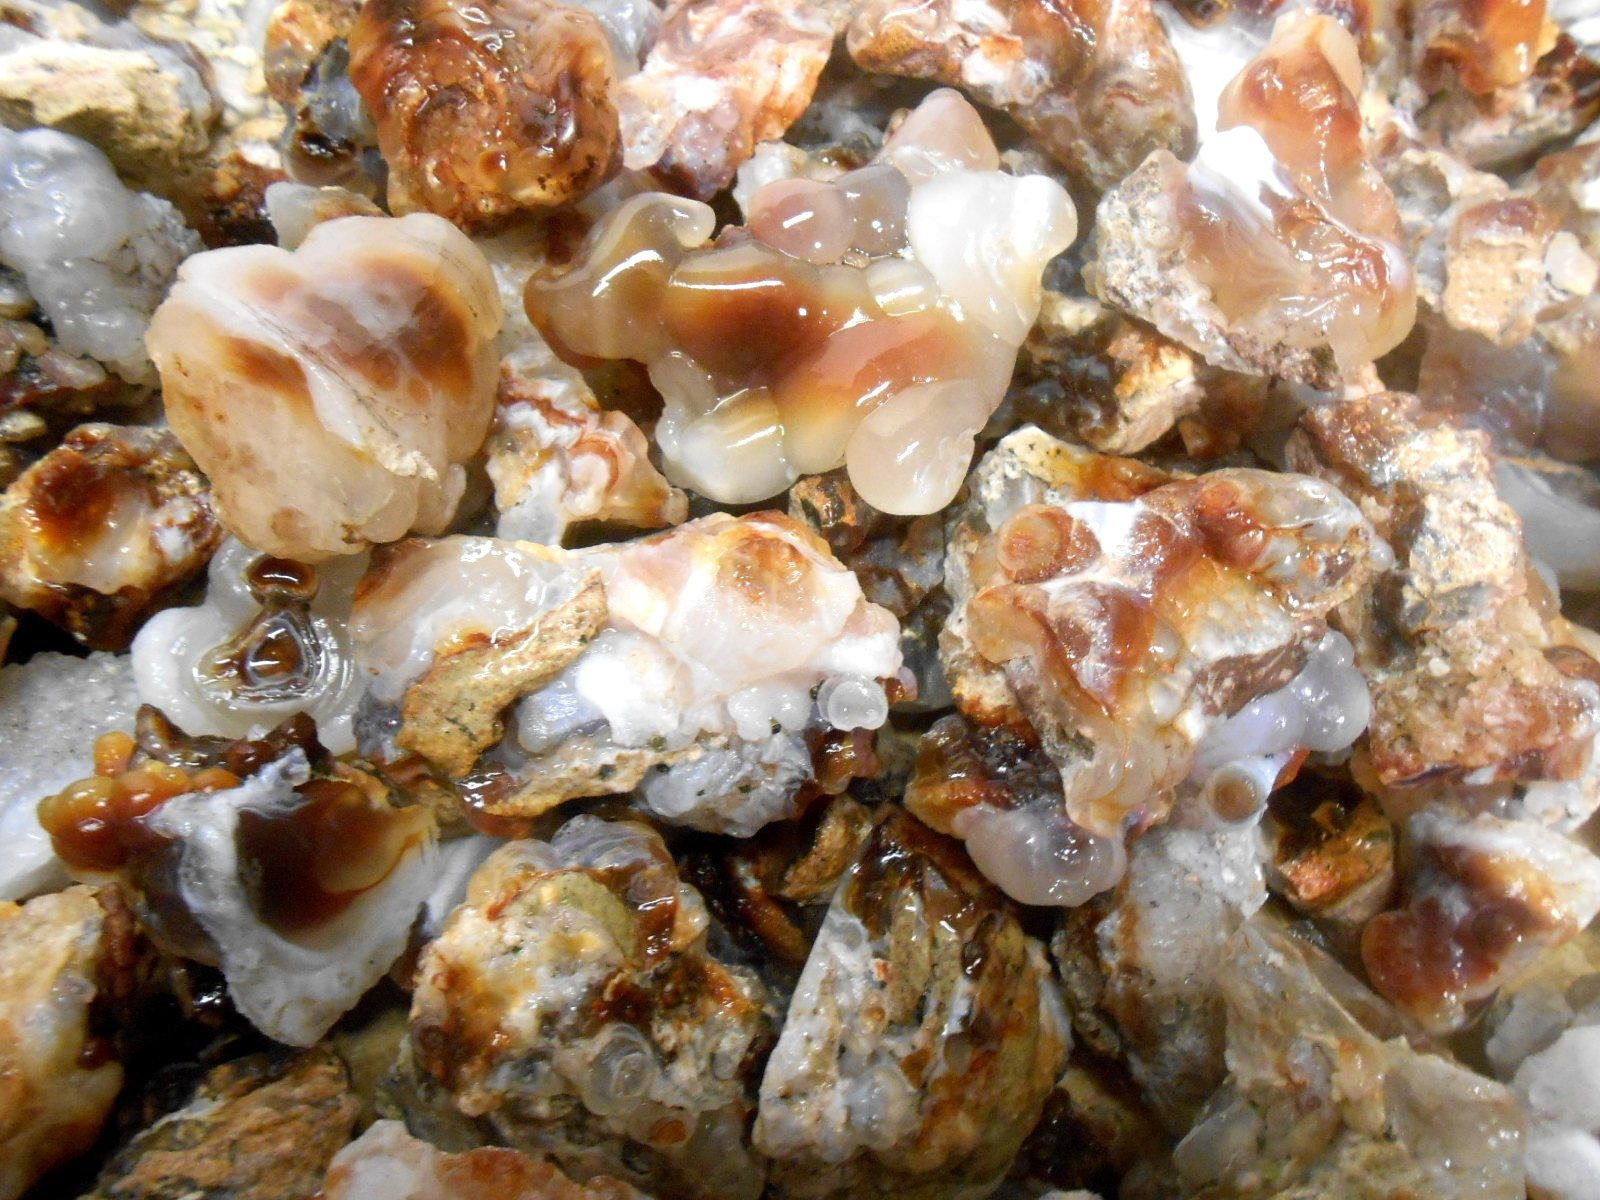 Rock Tumbler Gem Refill Kit Mixed ''Fire'' Agate Rough From The Mines of Calvillo,(Aguascalientes) Mexico, Deer Creek & Slaughter Mt. Arizona. 8 oz by Unknown (Image #2)